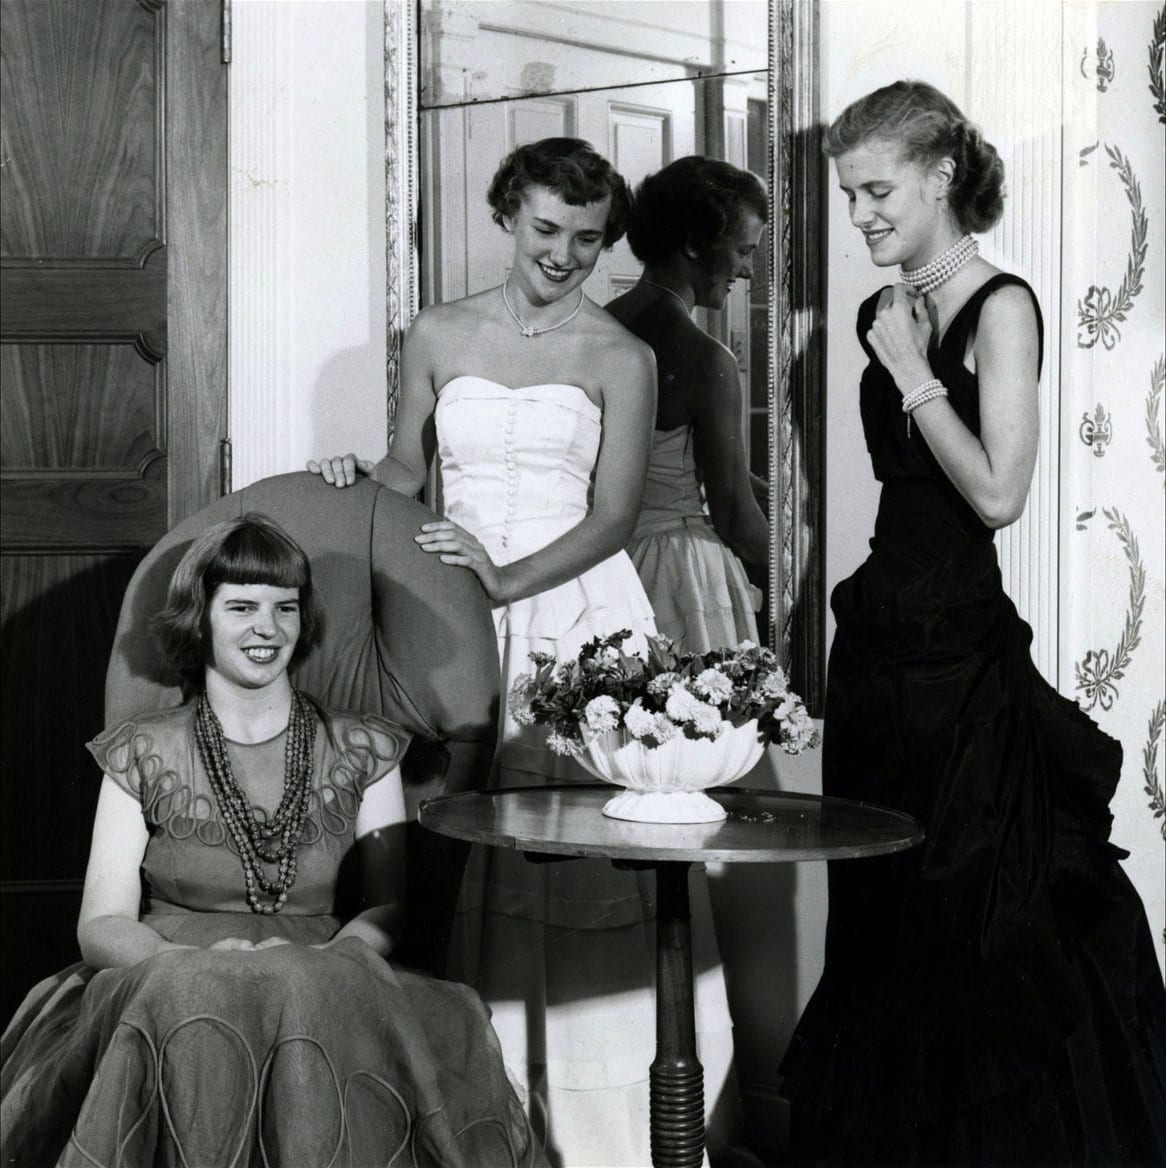 Right to left: Ann (sitting) Hope and Ellen